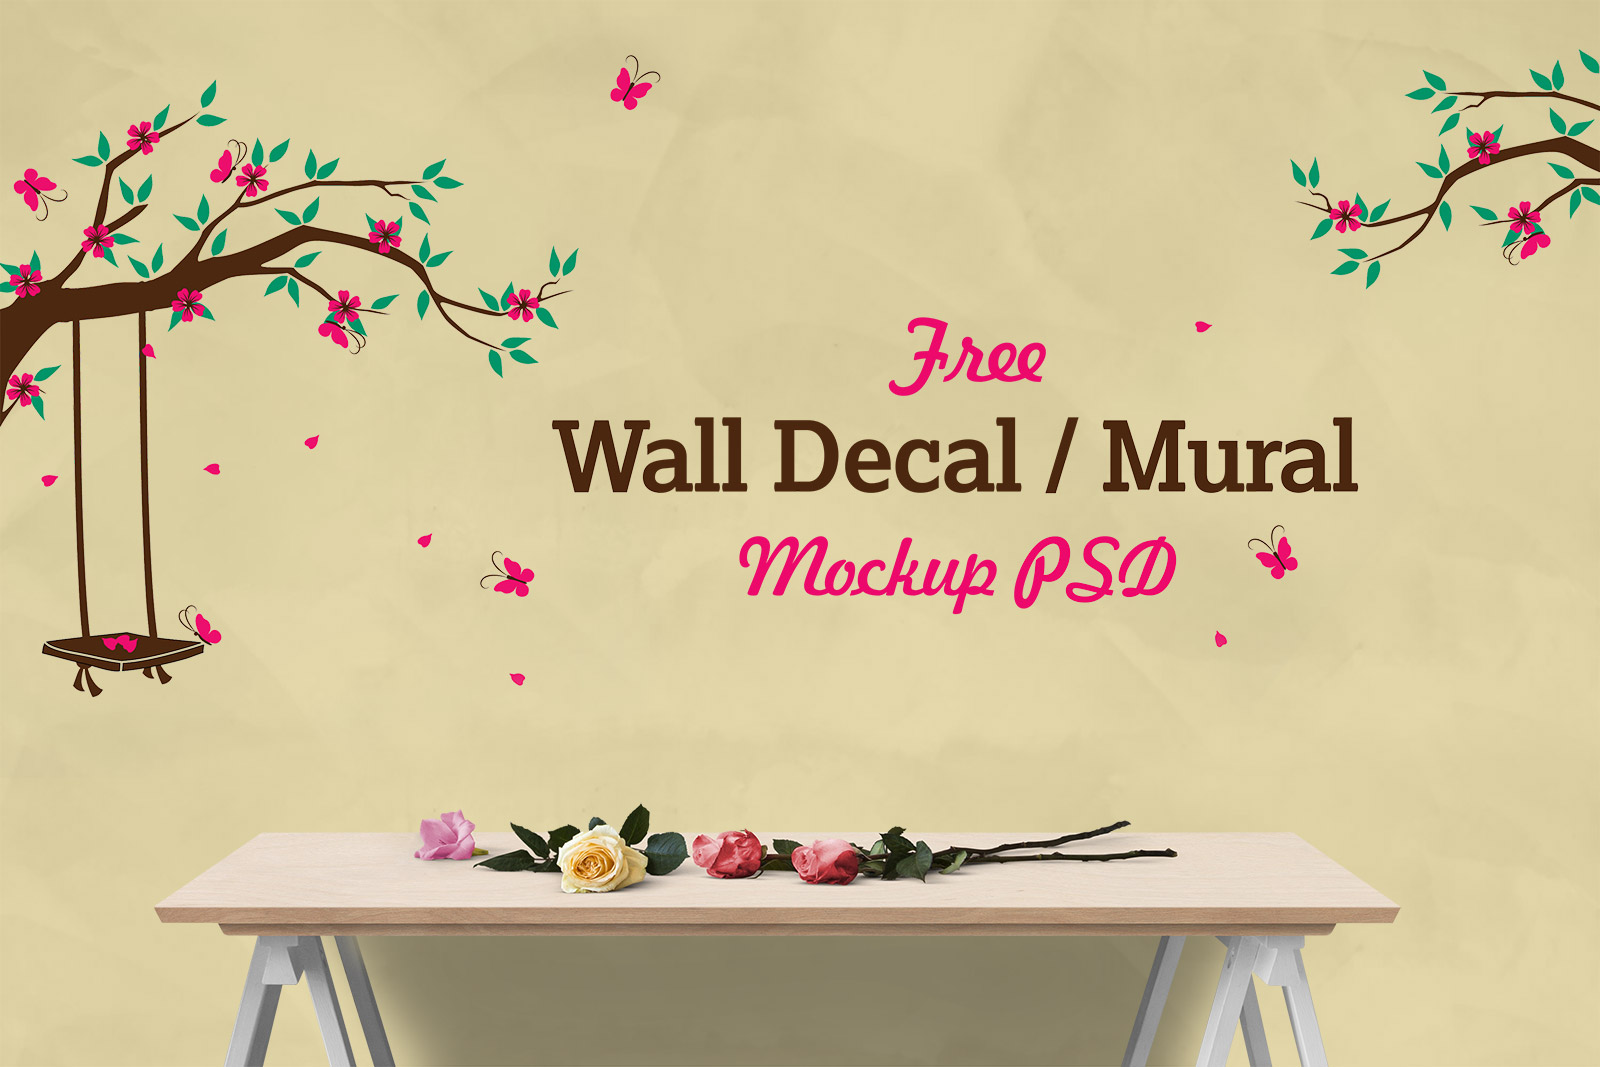 Free Vinyl Wall Decal / Mural Sticker Art Mockup PSD - Good Mockups